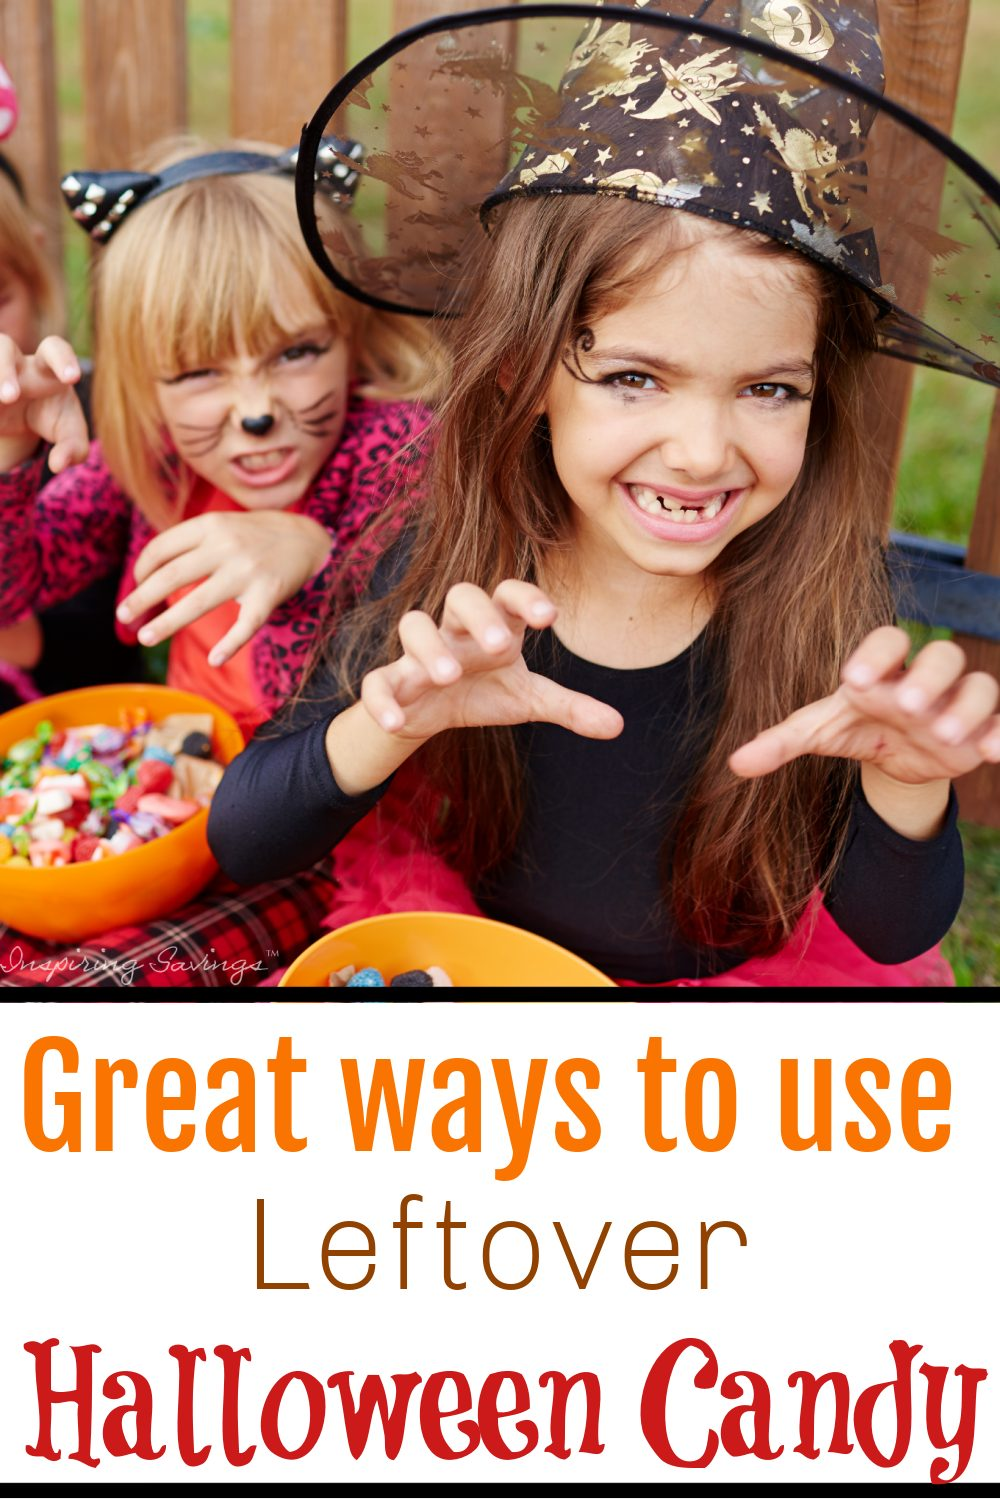 The buildup to Halloween can be pretty exciting for both kids and adults. But with trick-or-treating comes the overflow of candy. Here are some great ideas that are frugal and fun to use up that leftover halloween candy.